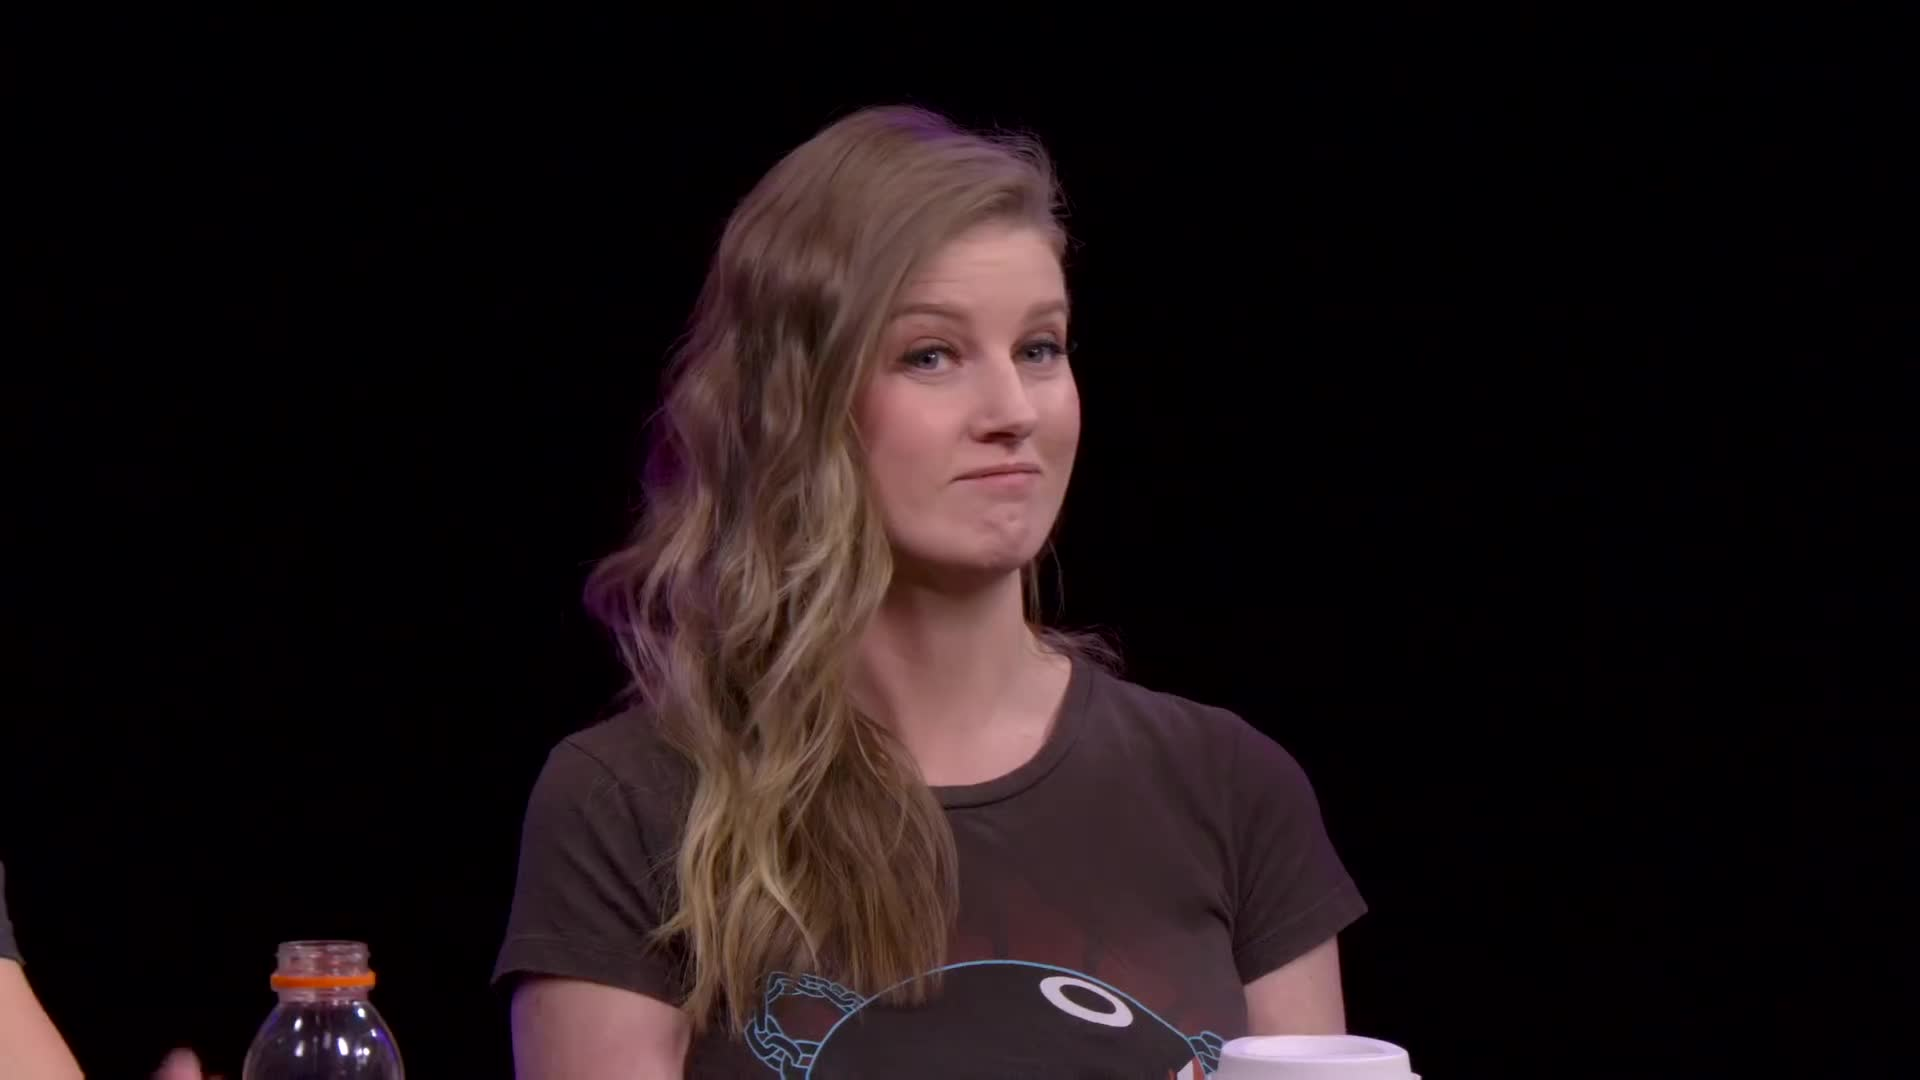 Ashley Jenkins, The Know, burn, hand gesture, innuendo, insults, pinky wiggle, reaction gifs, small, teeny weeny, that's a penis!, Little one - (from the episode 'Bait and Switch') GIFs